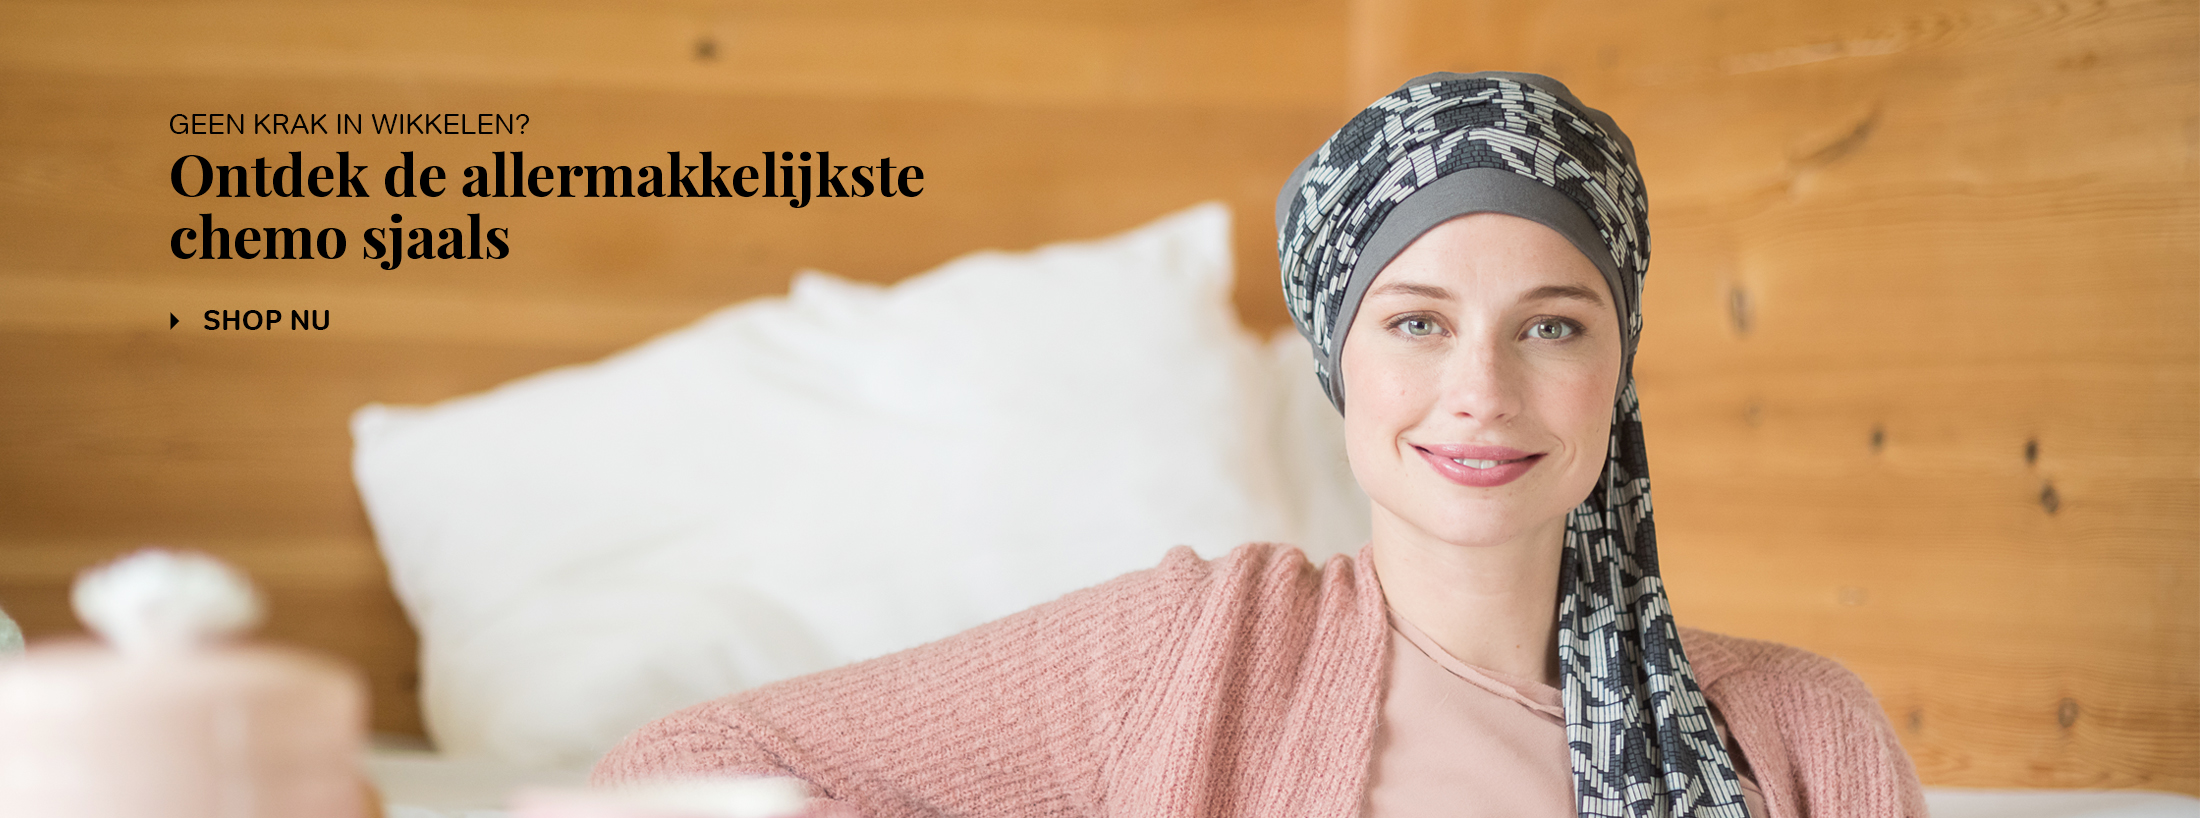 hippe chemo sjaals